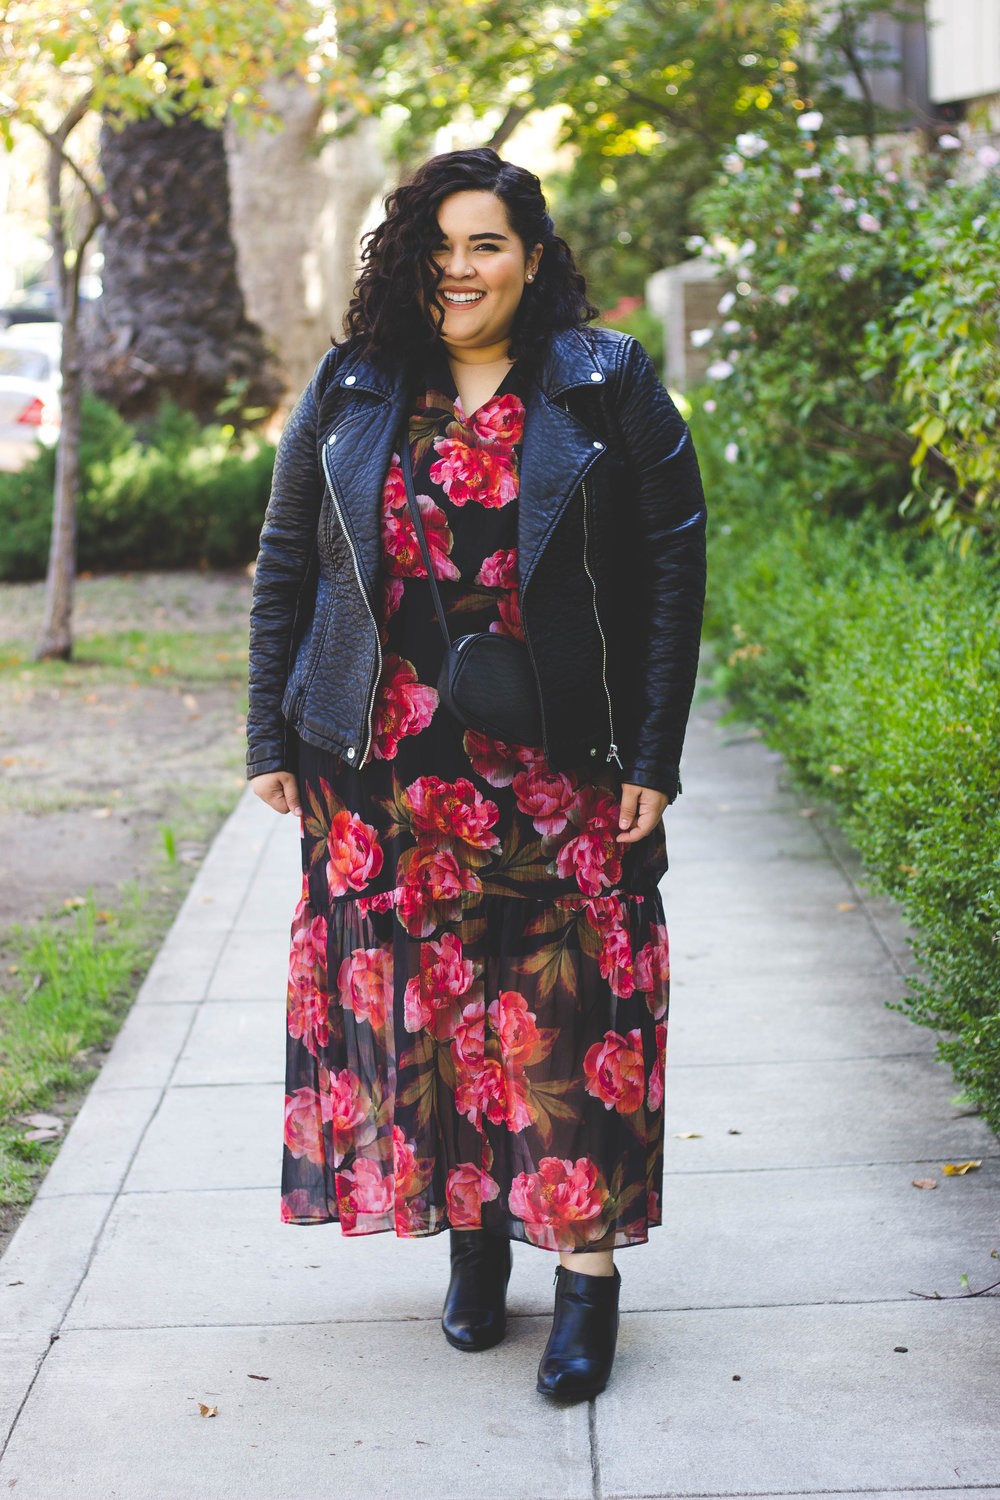 FloralDressWLeatherJacket (52 of 53).jpg